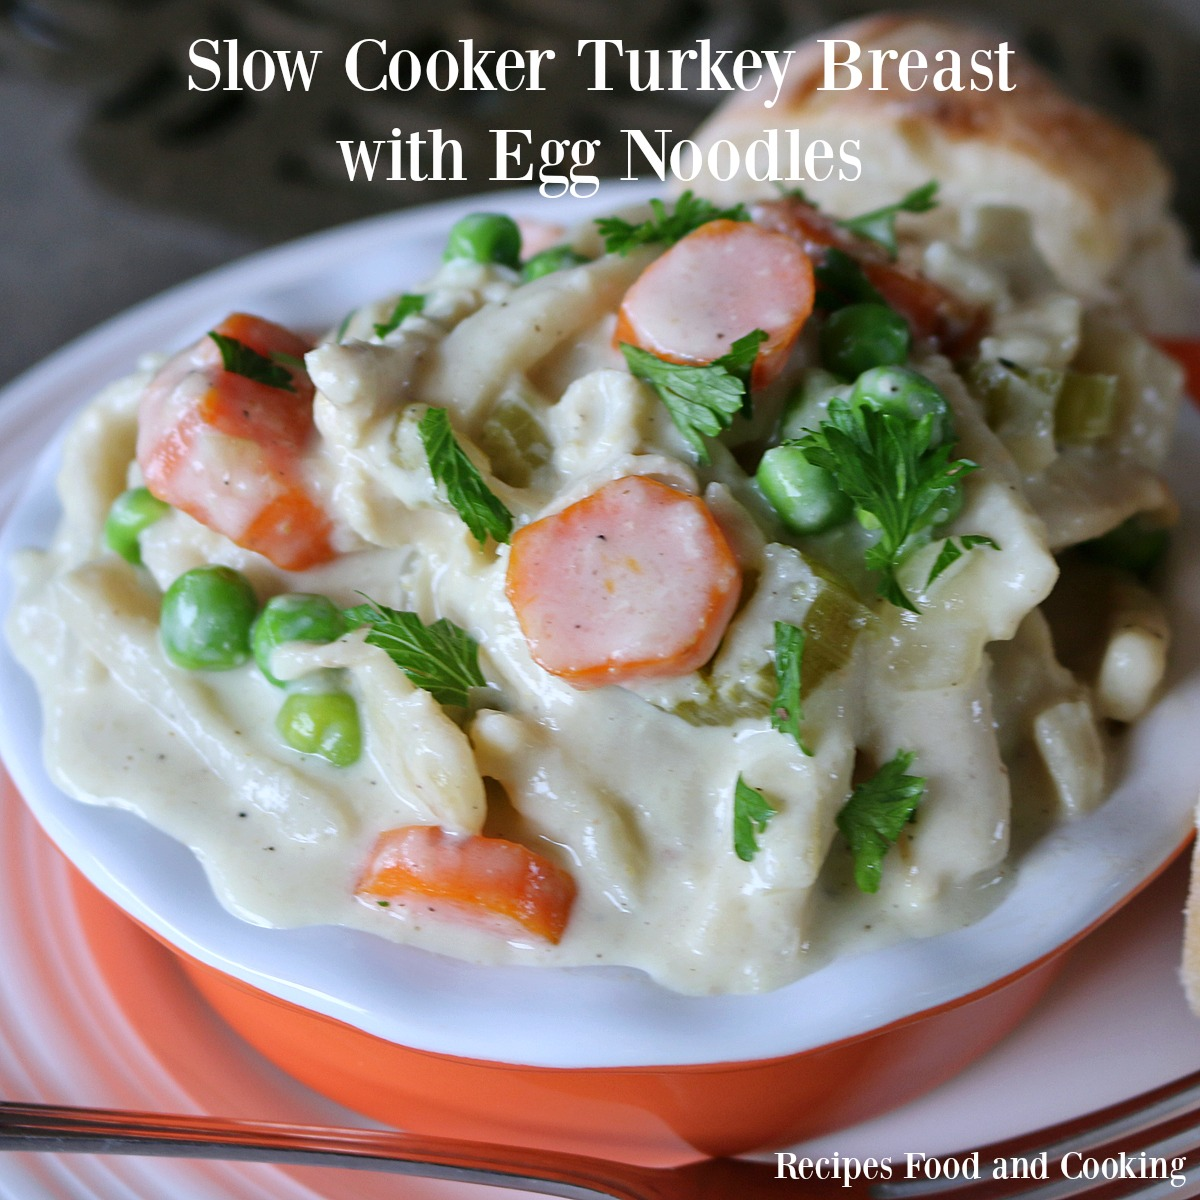 Turkey Cooking Time 15 Lbs >> Slow Cooker Turkey Breast with Egg Noodles from Recipes Food and Cooking